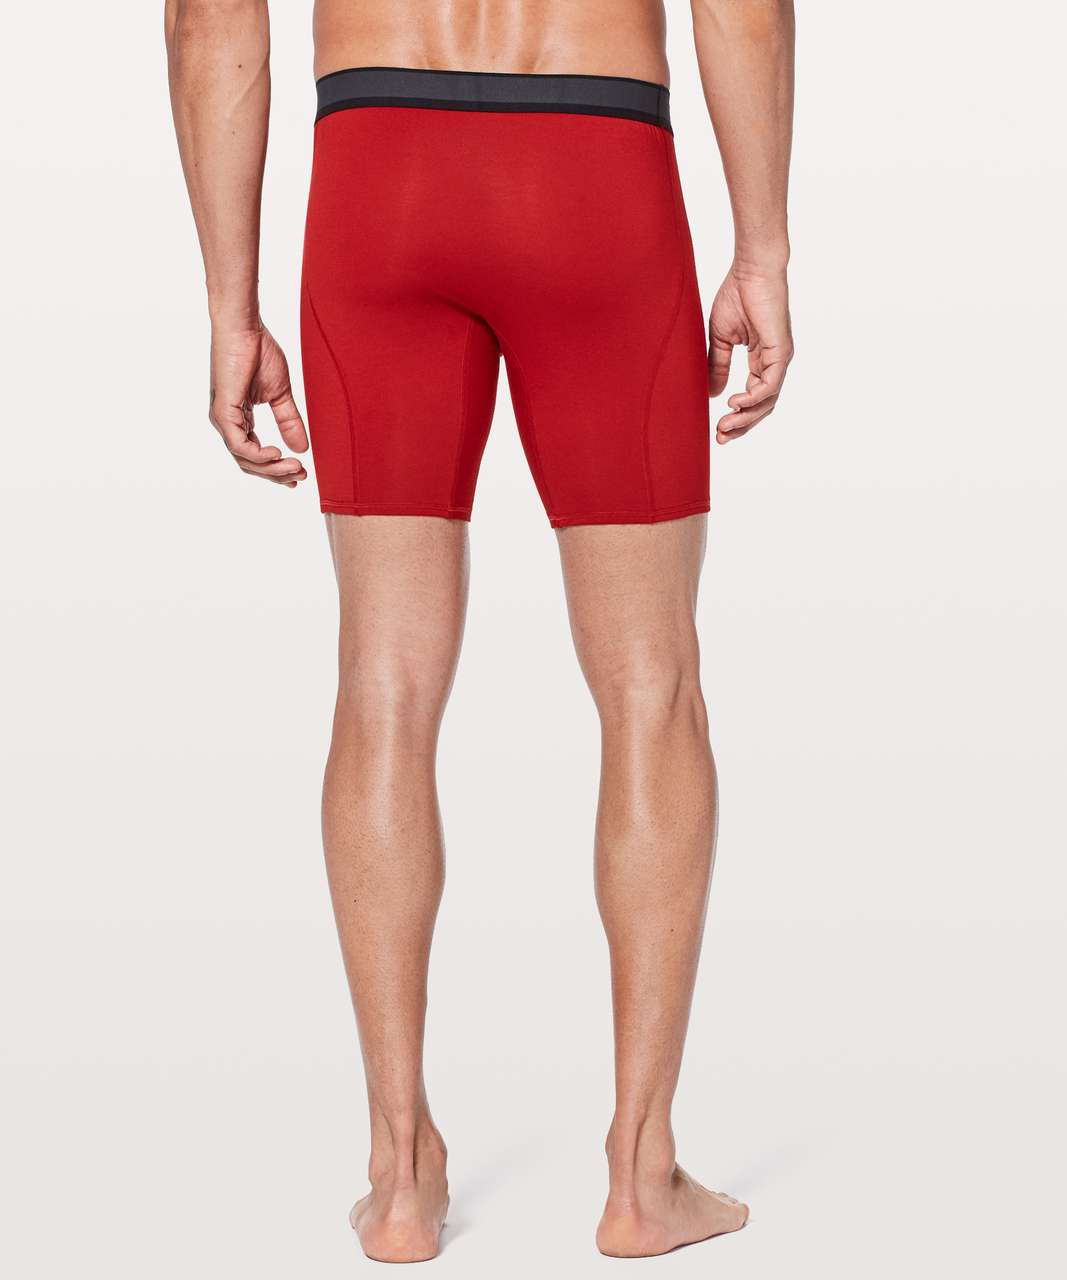 "Lululemon No Boxer Boxer (The Long One) *7.5"" - Game Day Red"